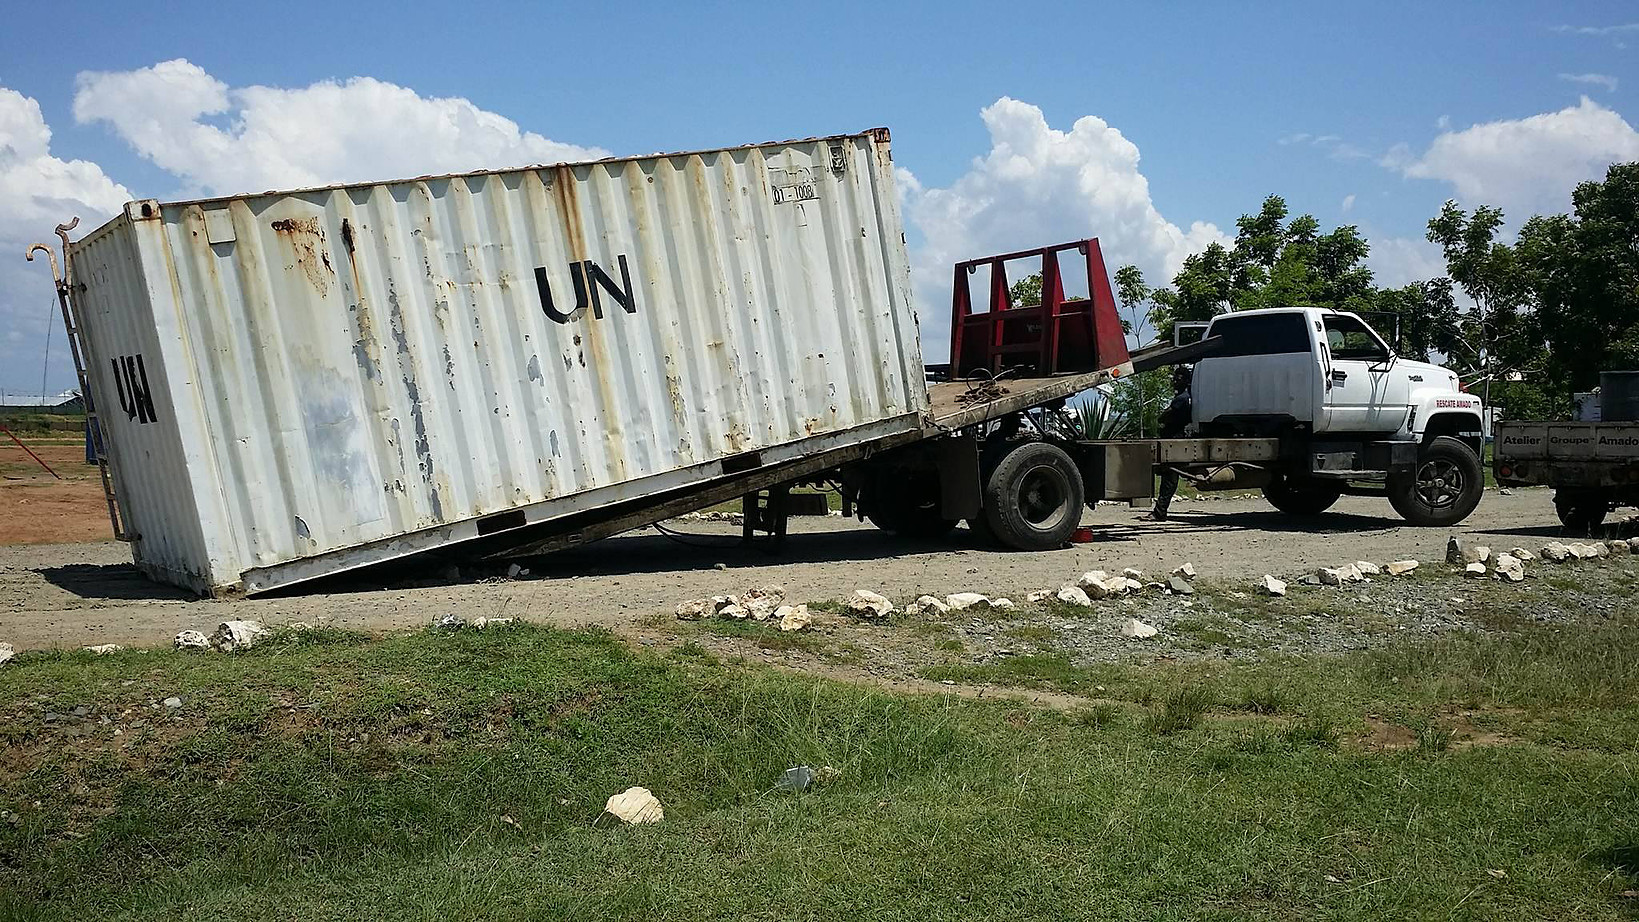 united nations (u.n.) containers leaving on truck